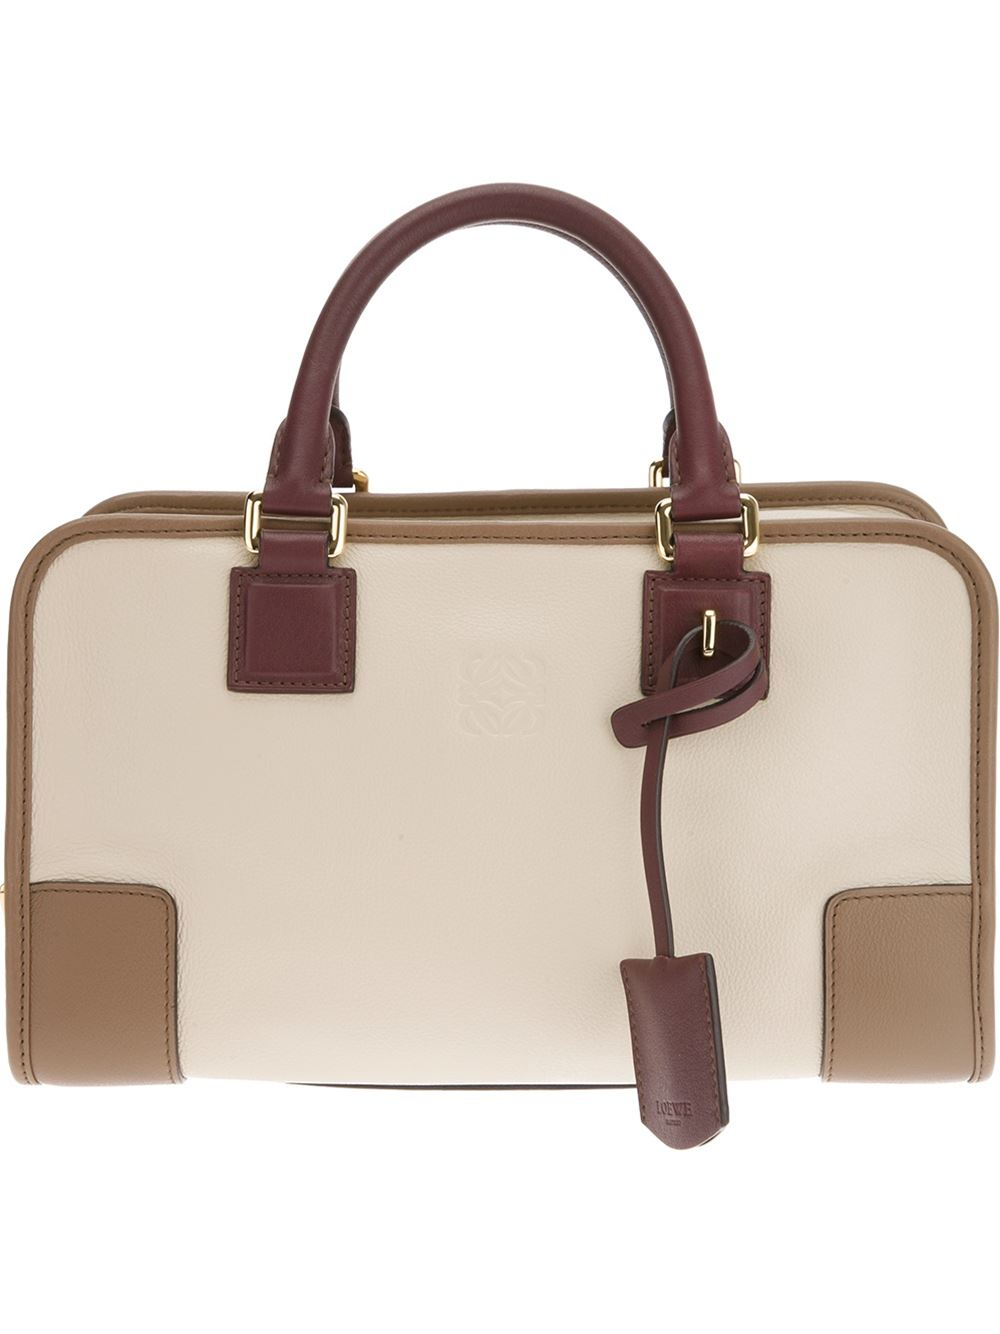 Loewe Structured Rectangle Tote Bag in Natural